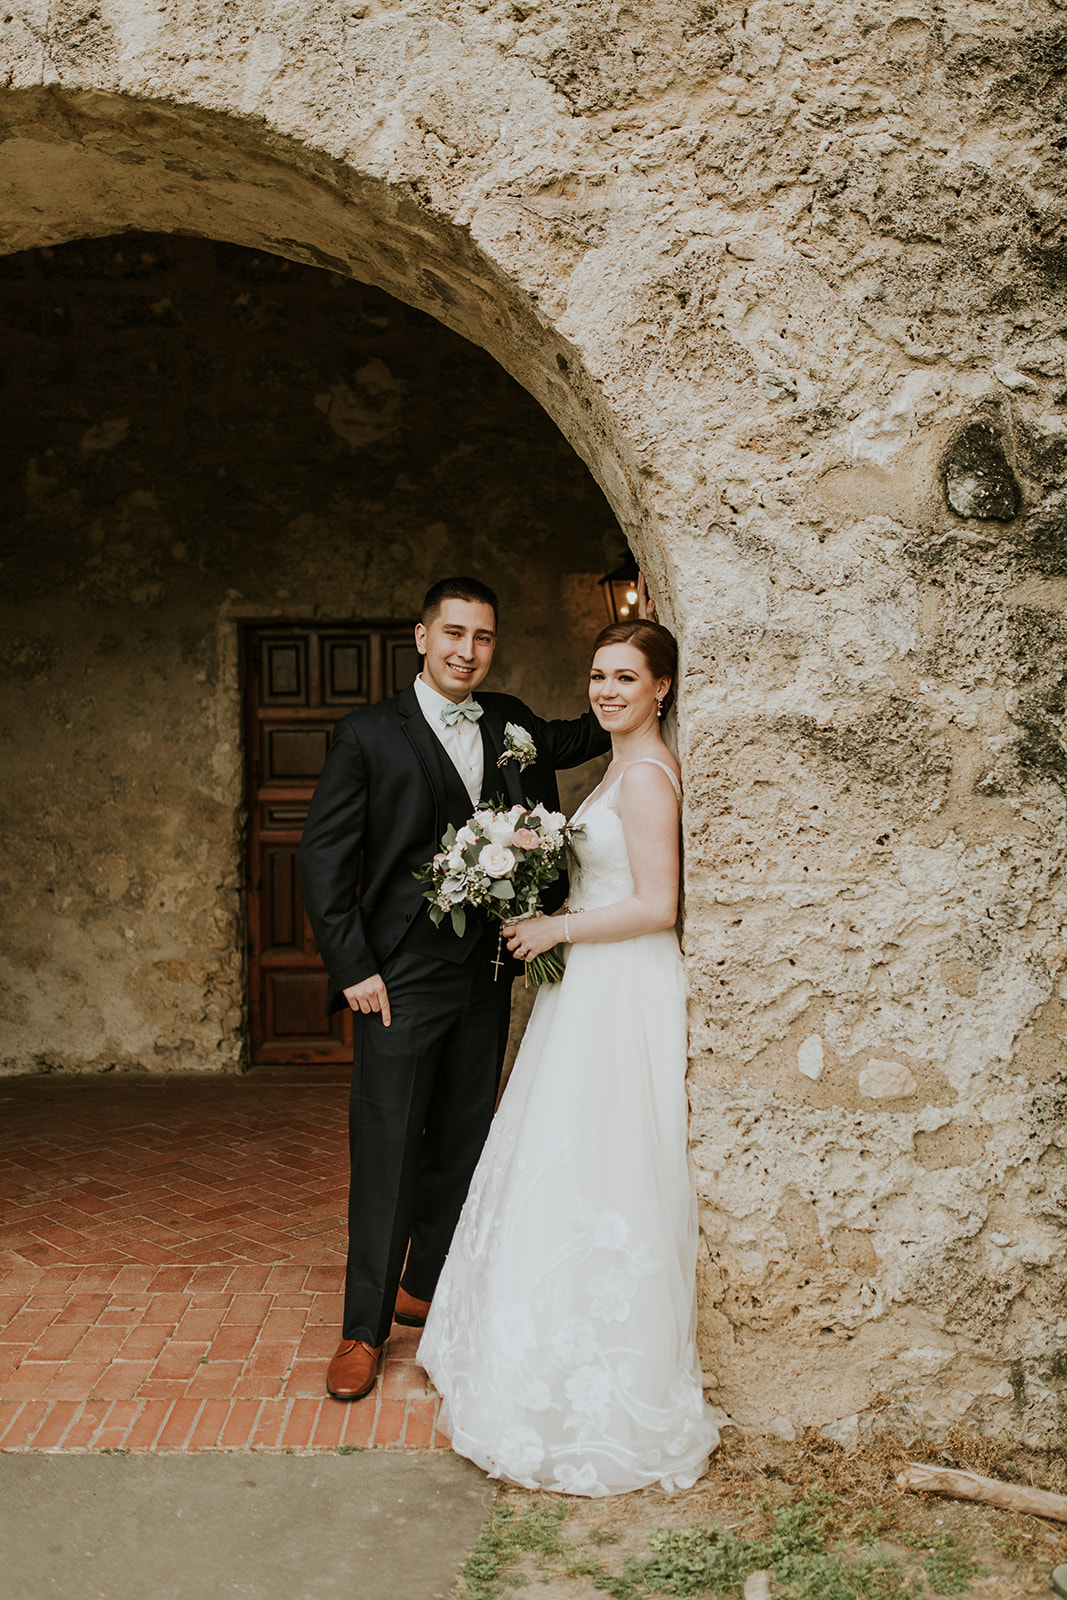 Jenna + Brandon  mission concepcion // sunset station wedding